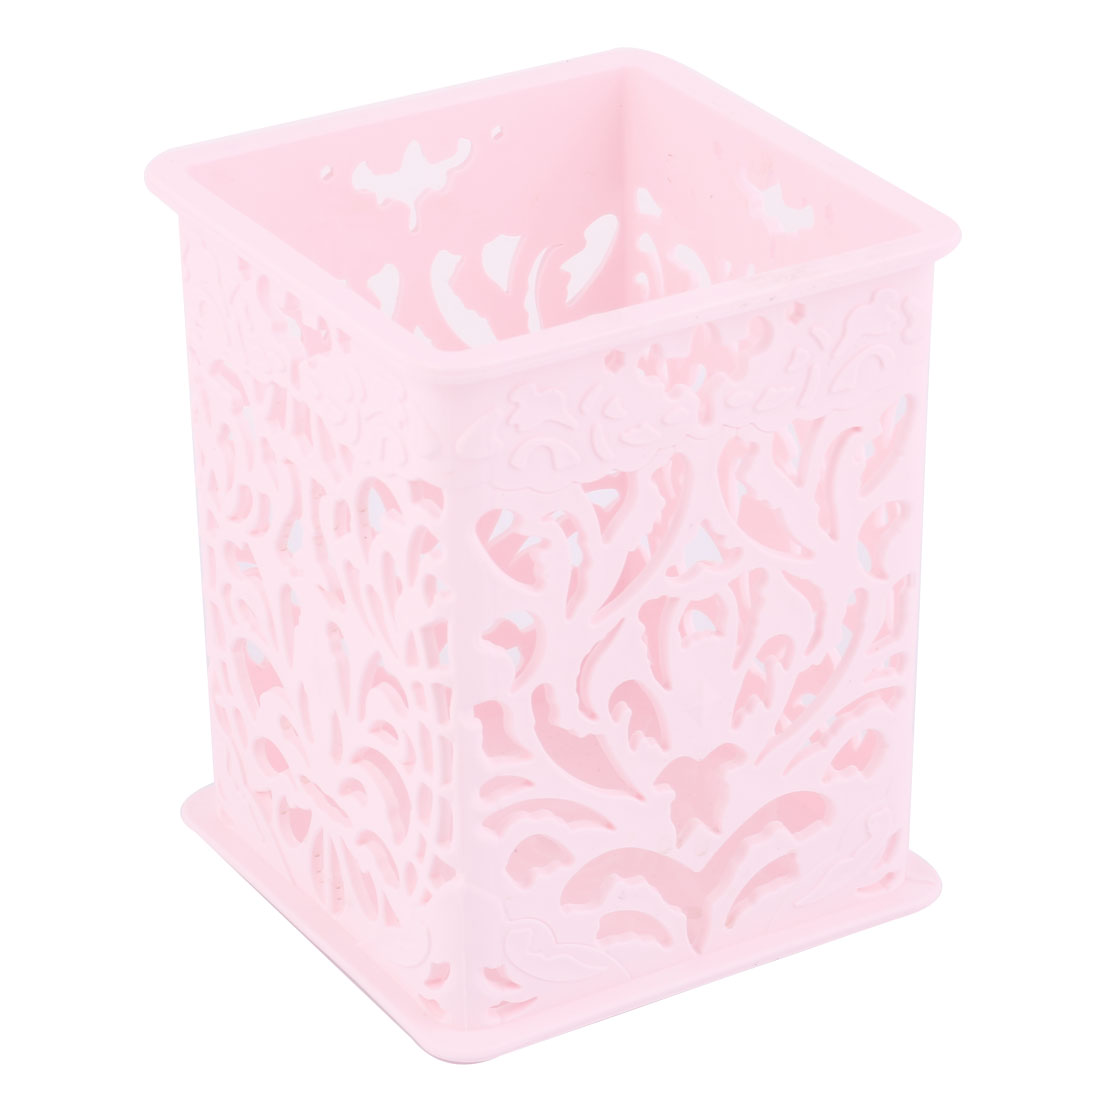 Office Plastic Flower Pattern Rectangle Design Storage Holder Basket Container